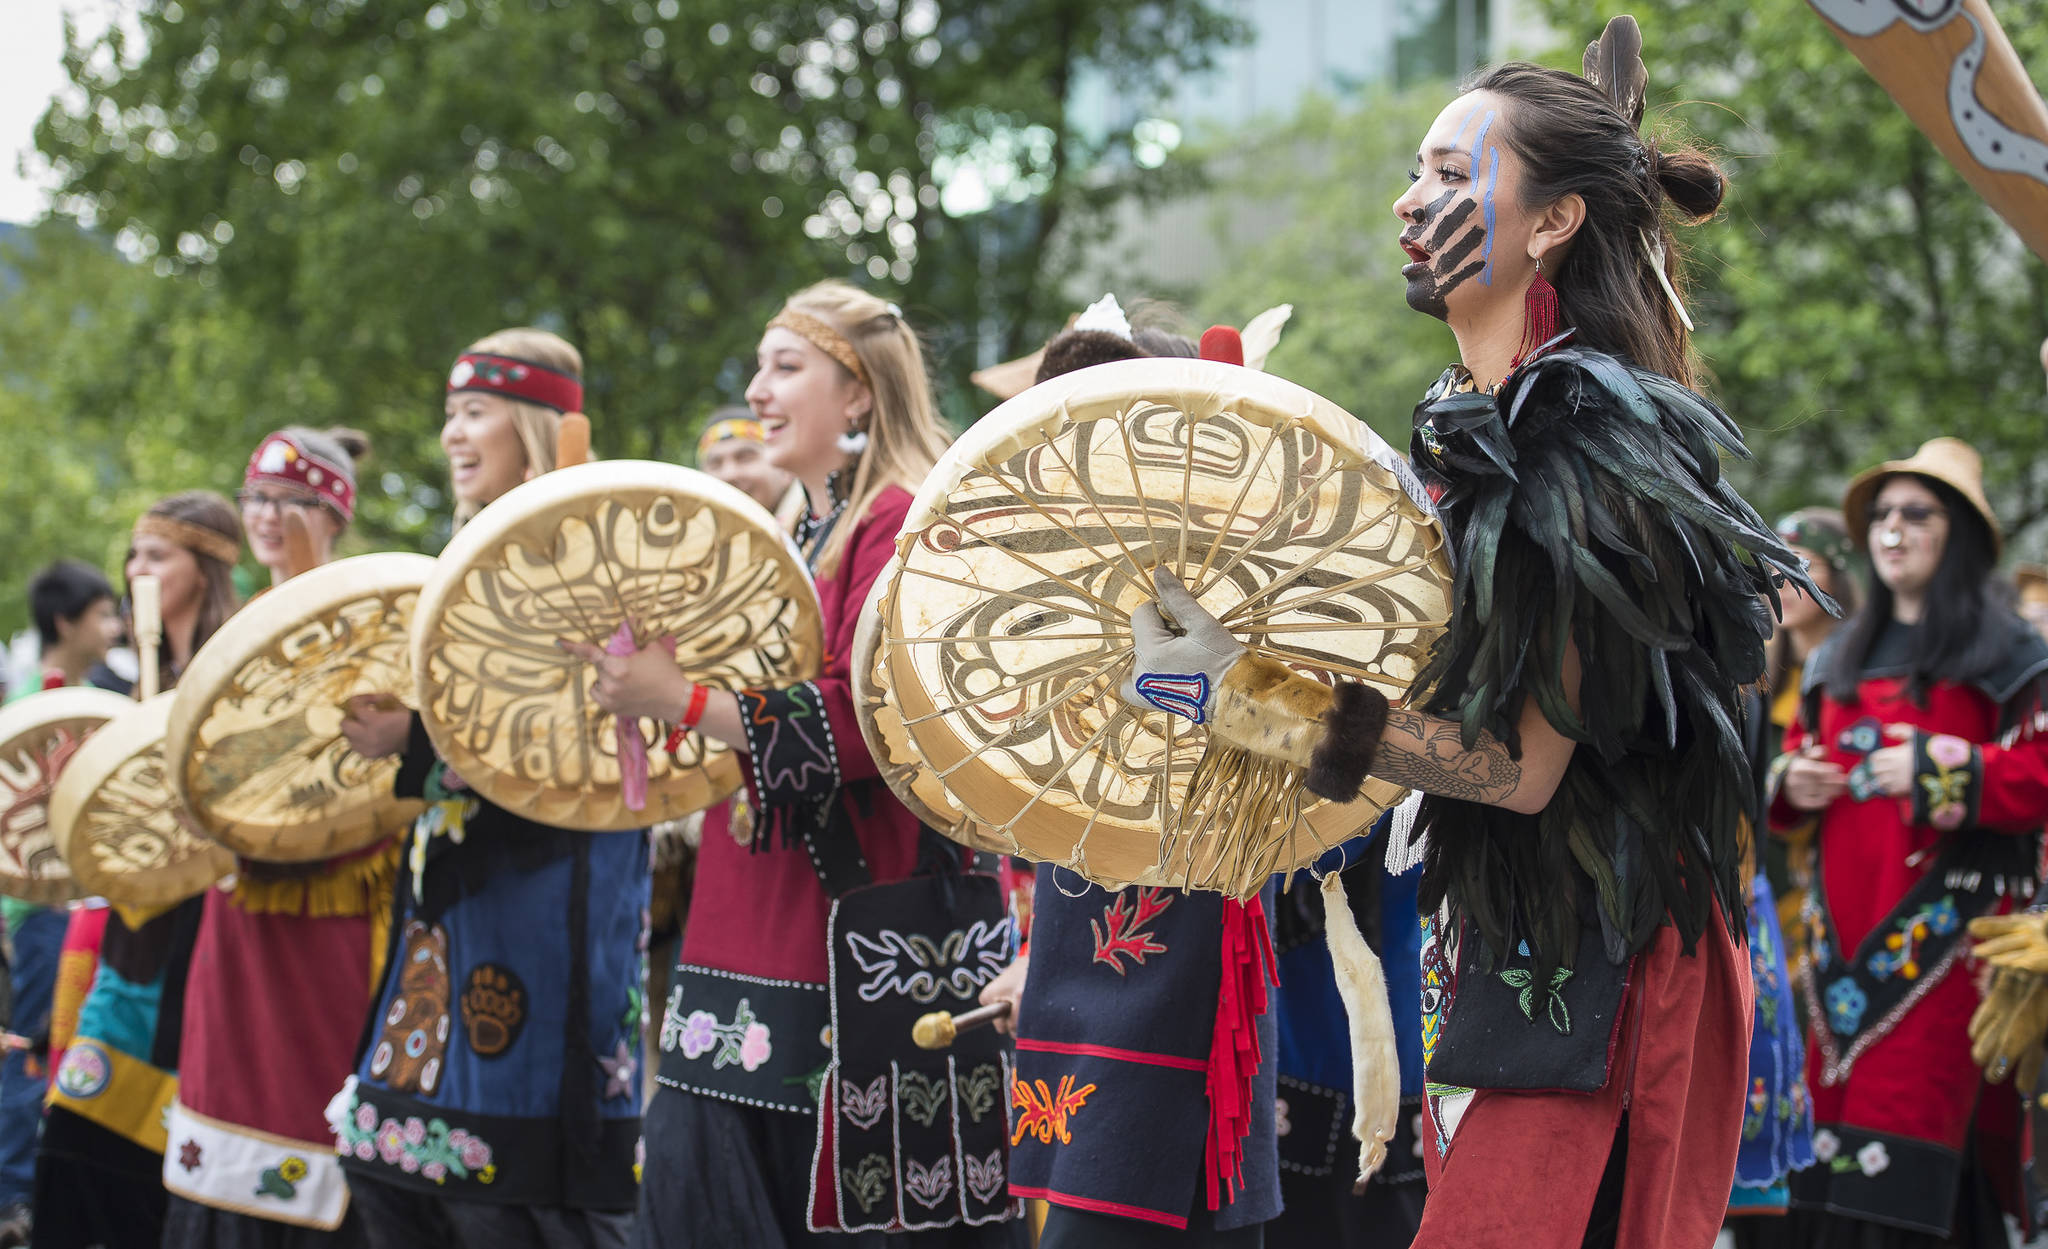 Members of the Mount Saint Elias Dancers of Yakutat parade in the Grand Entrance for Celebration 2018 along Willoughby Avenue on Wednesday, June 6, 2018. (Michael Penn | Juneau Empire)